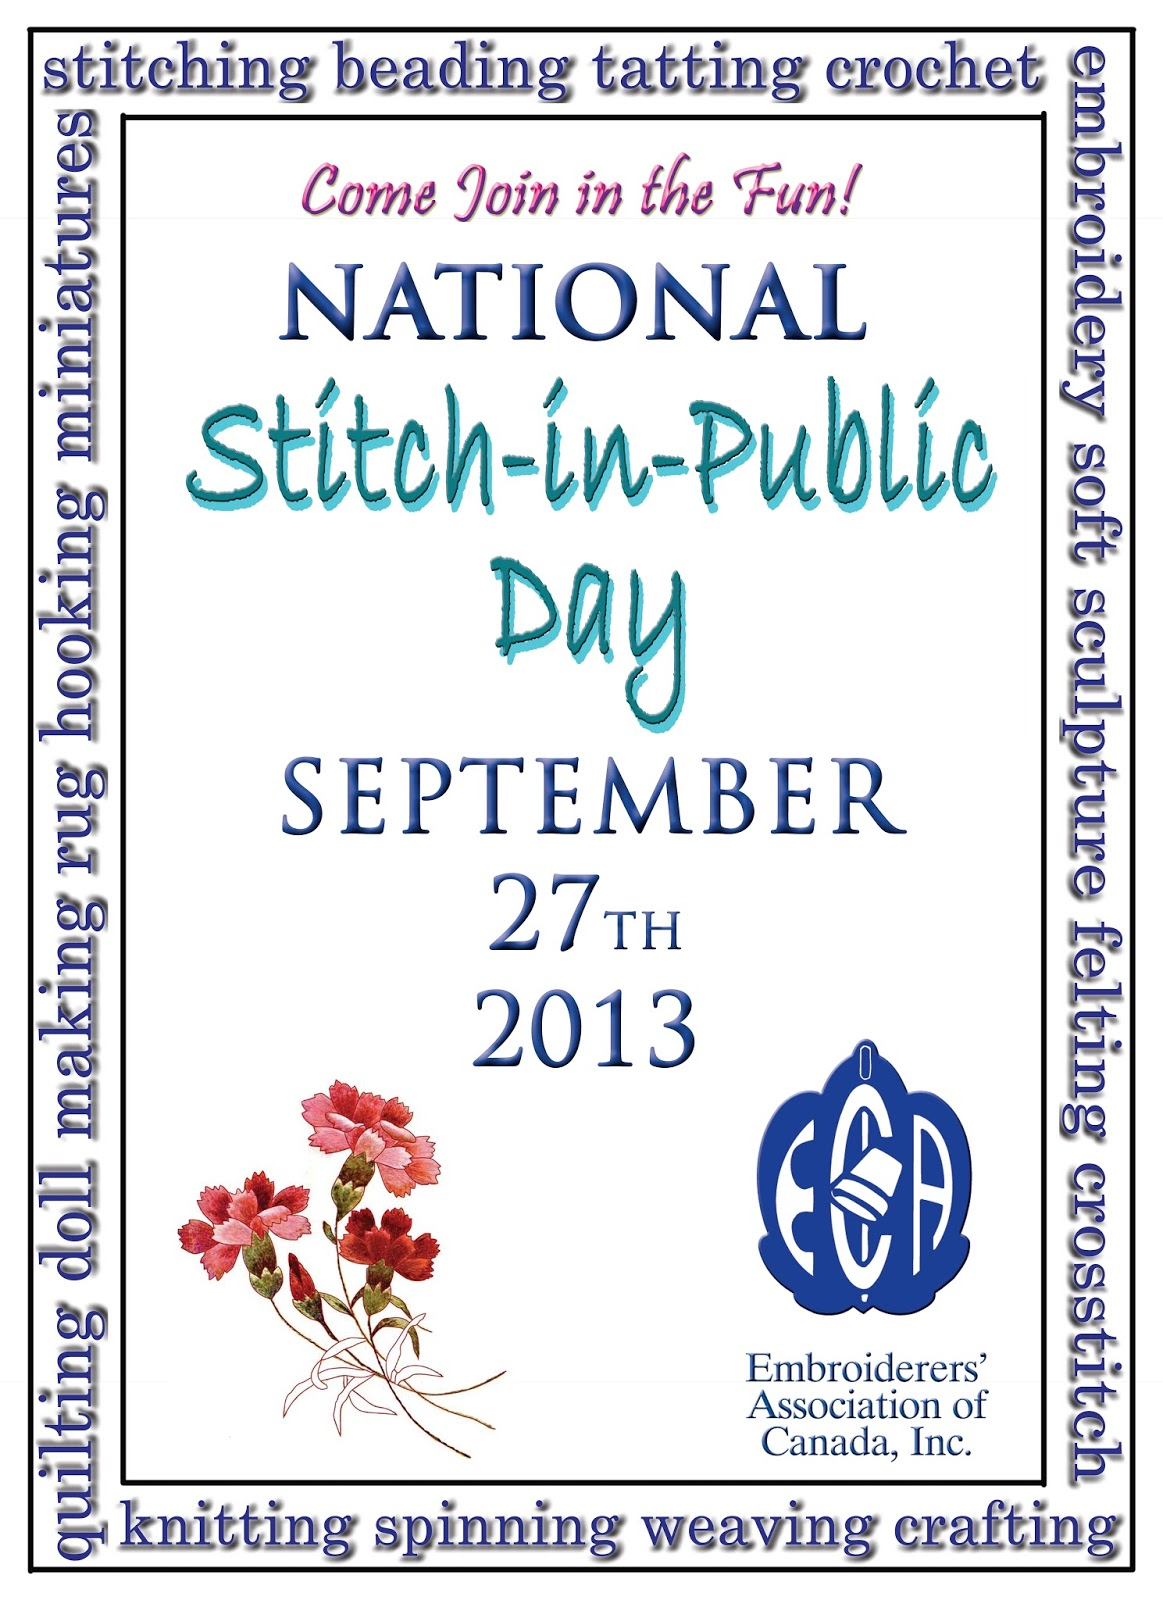 September 27th 2013 Nat'l Stitch in Public Day